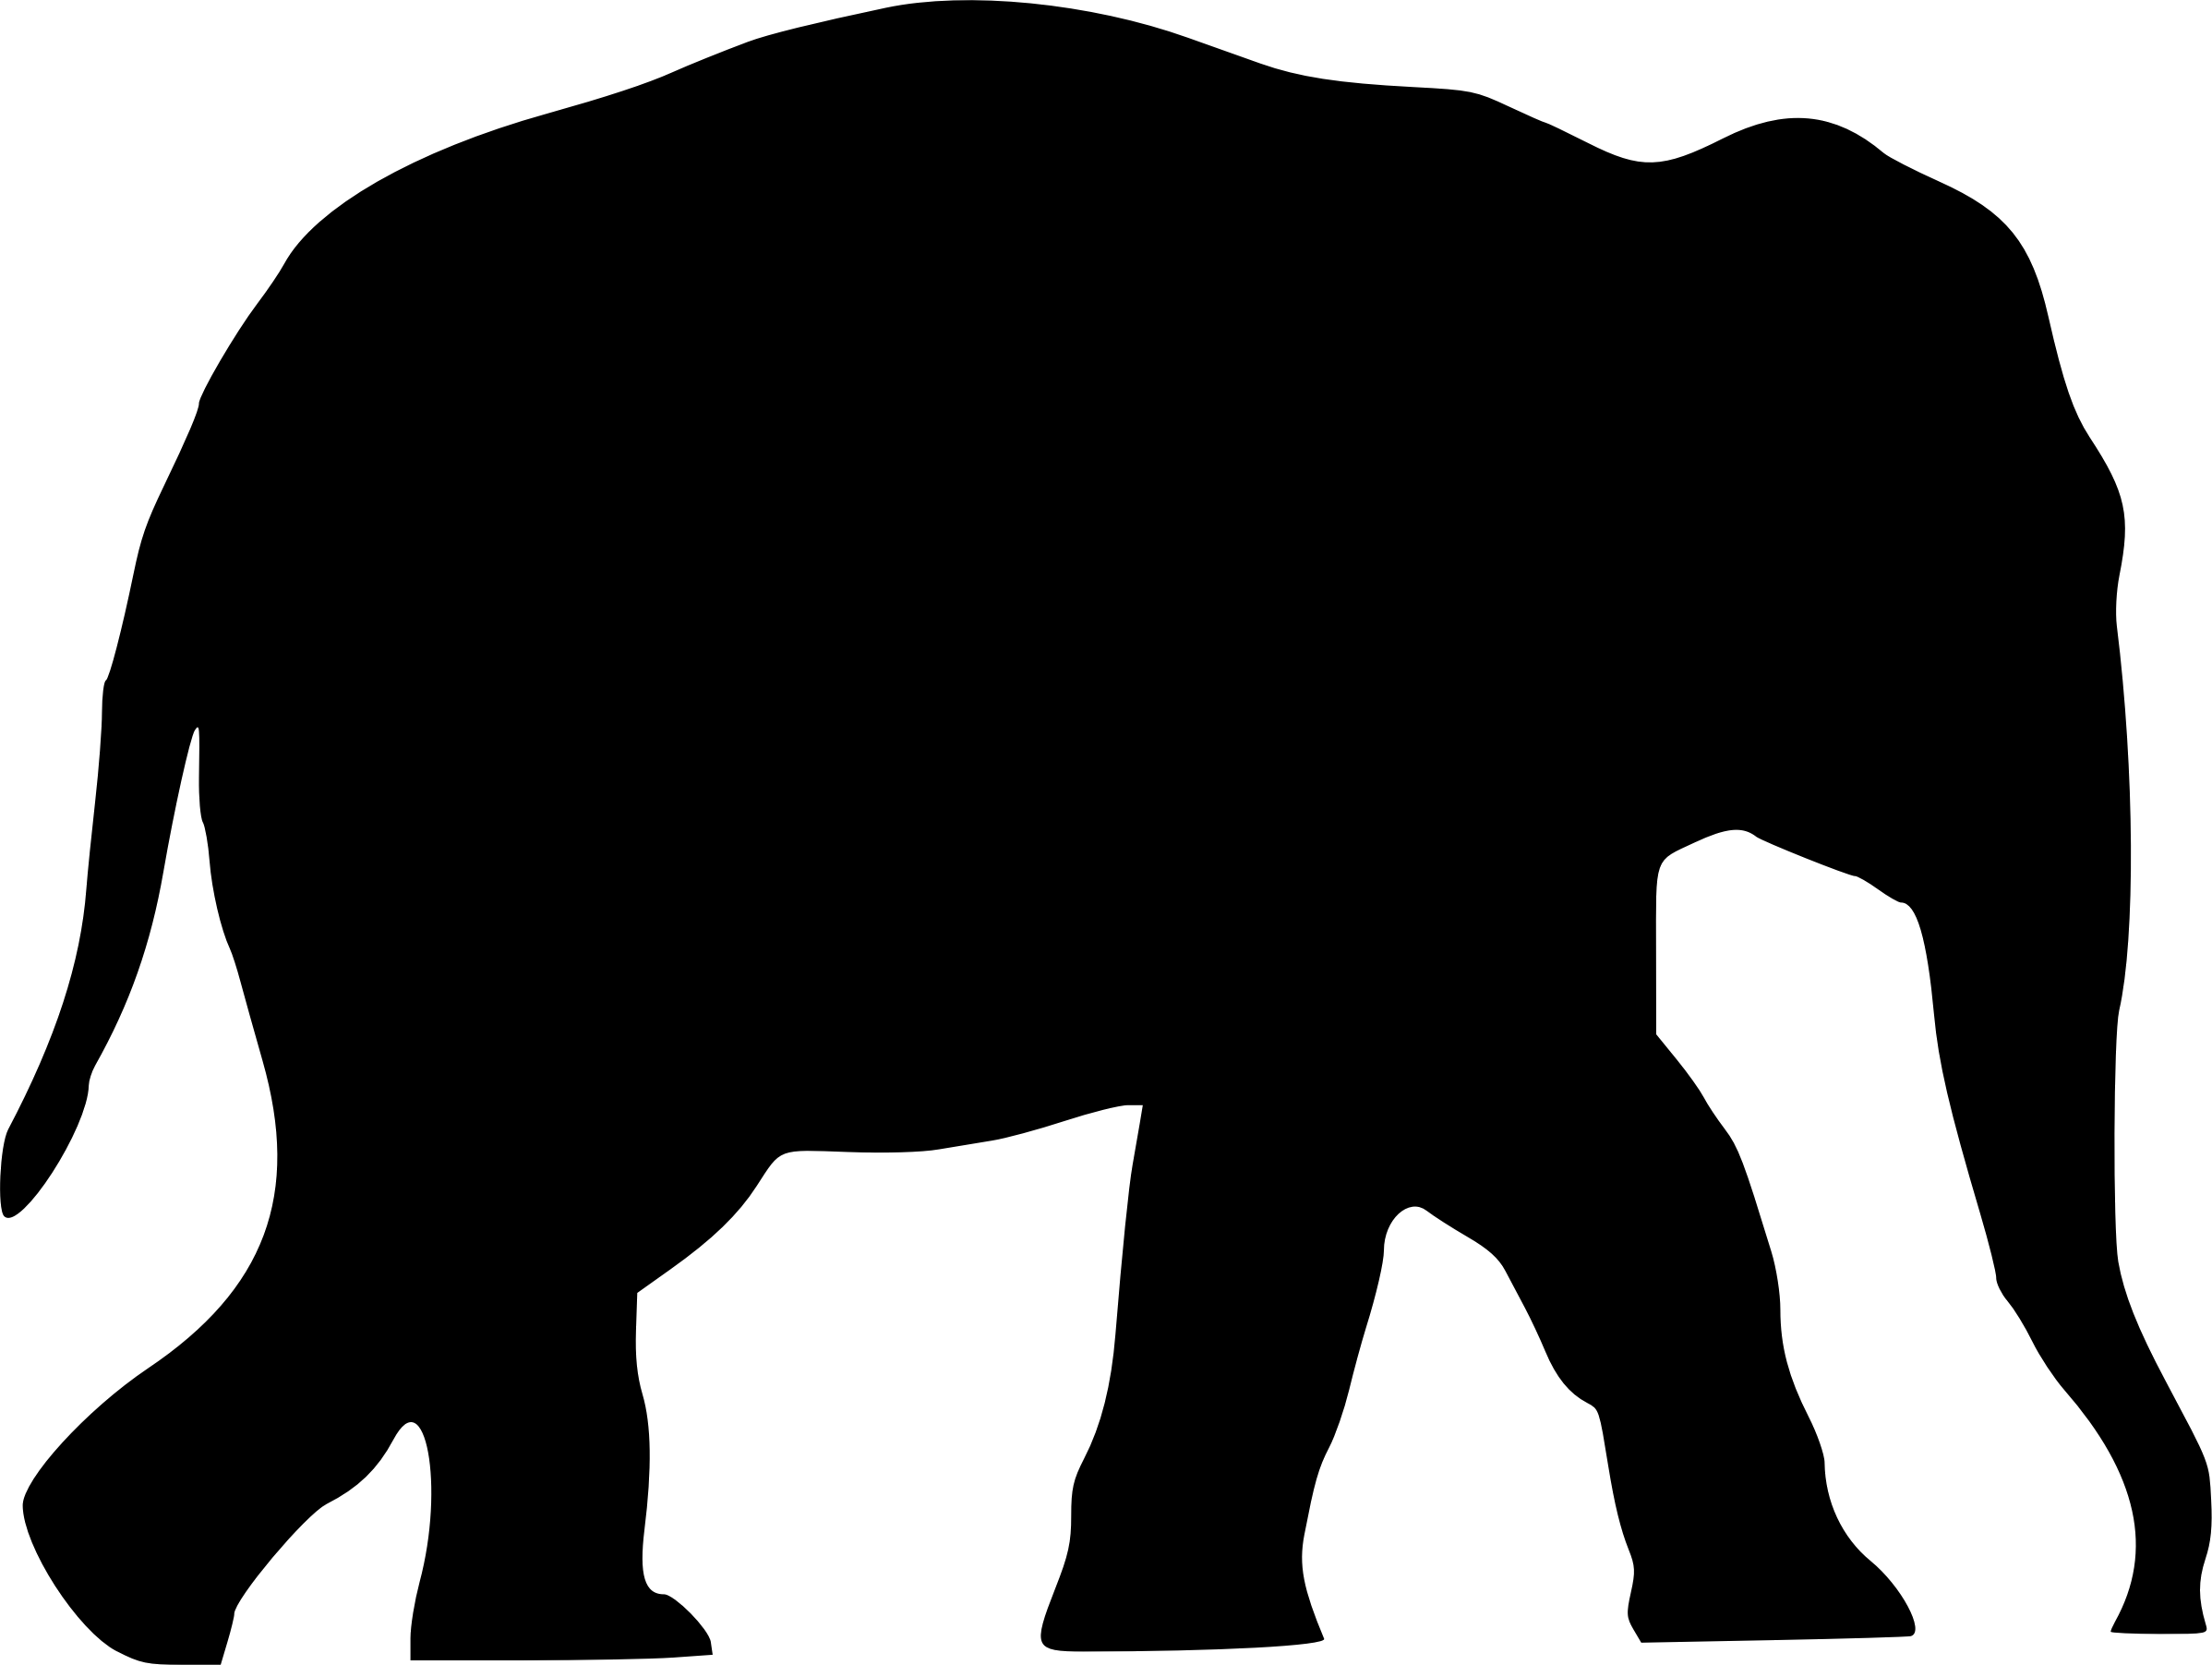 Elephant clipart silhouette clip royalty free download Elephant Clipart Silhouette Free Best Transparent Png - AZPng clip royalty free download